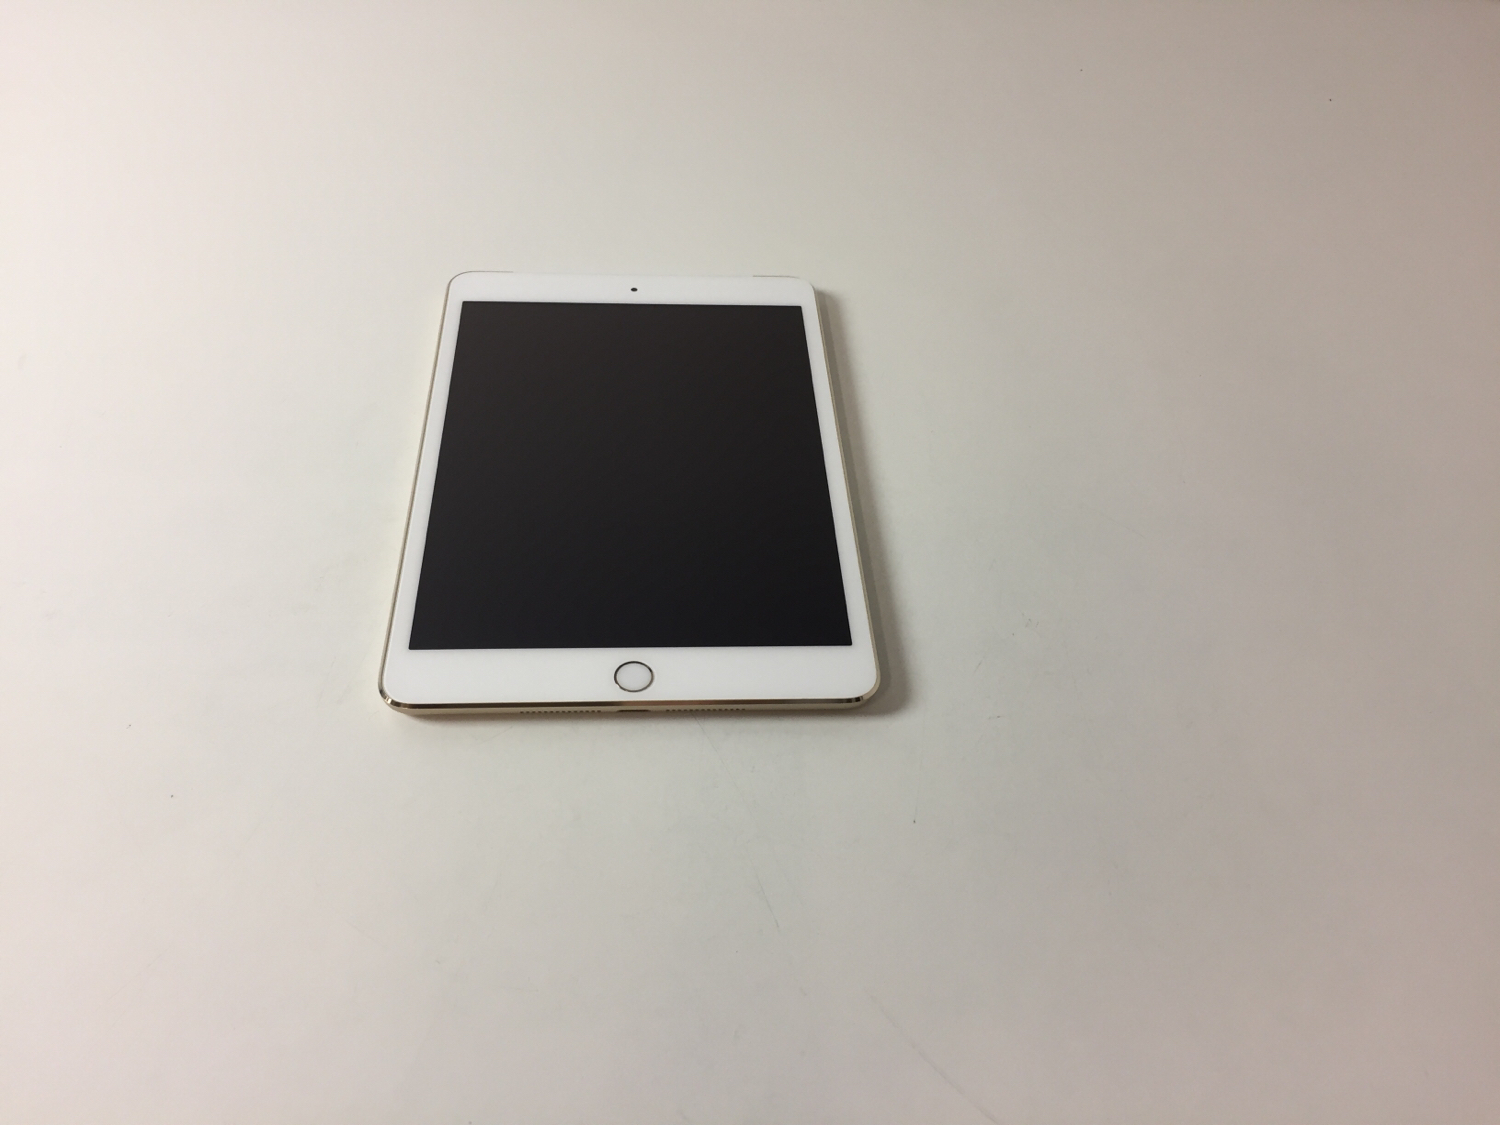 iPad mini 3 Wi-Fi + Cellular 64GB, 64GB, Gold, Kuva 1